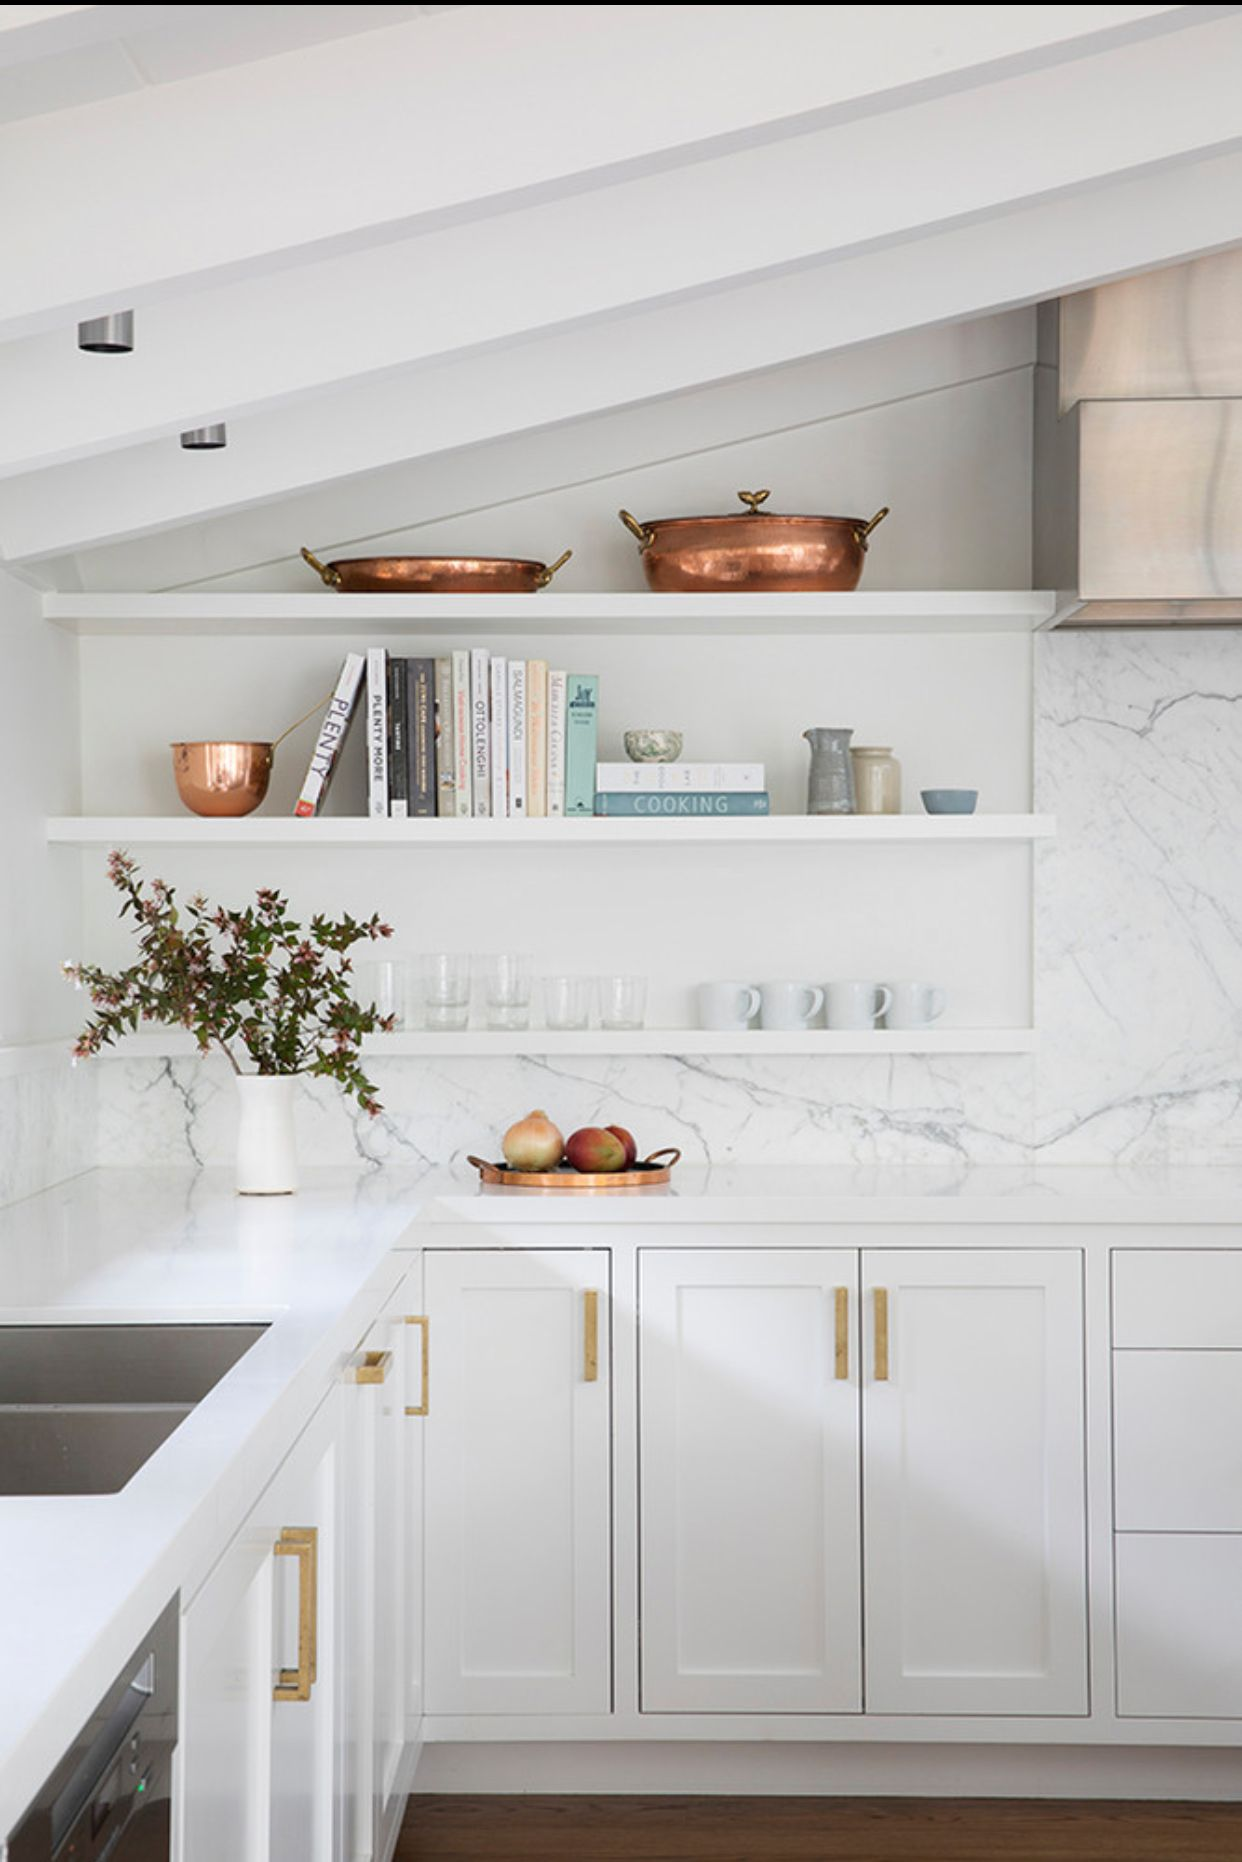 Pin by Jessica Dooley on Kitchen/Dining ideas   White kitchen ...